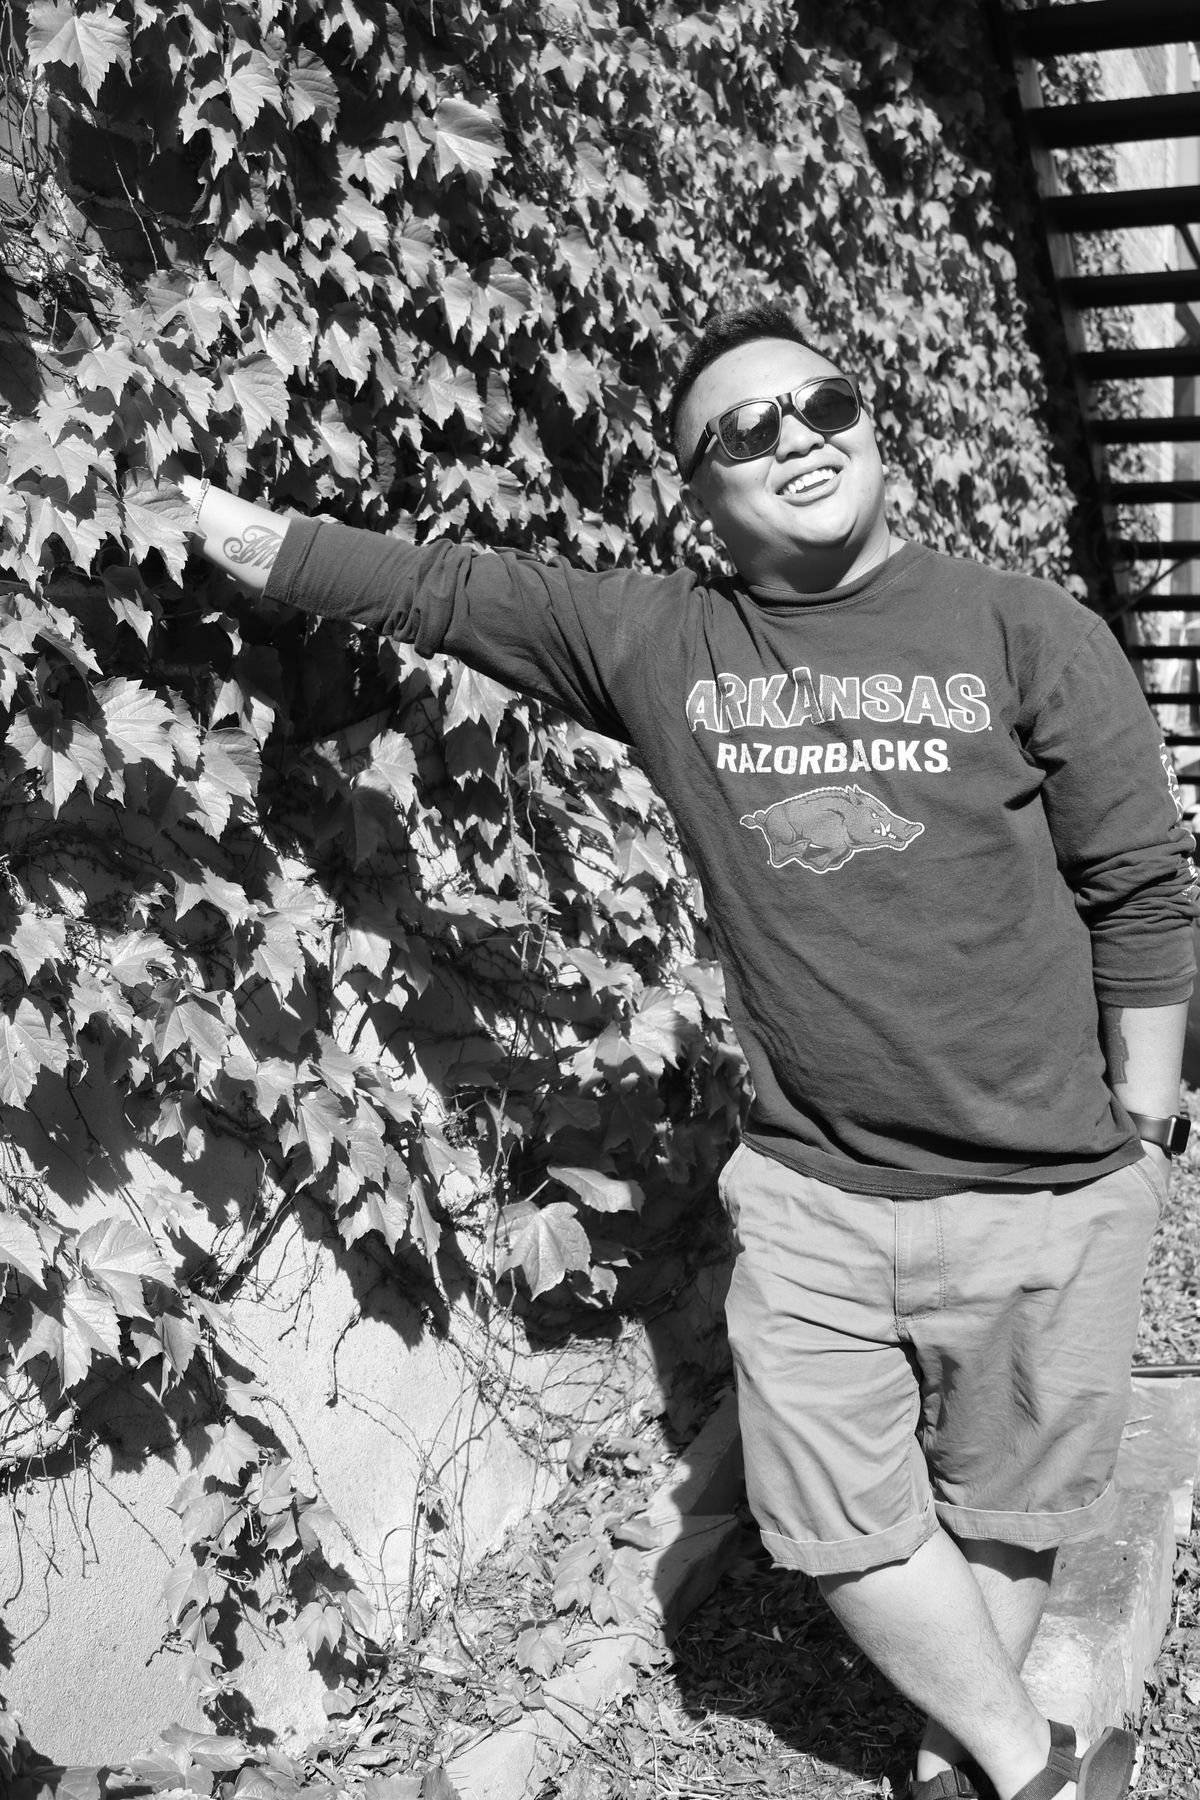 Downtown Siloam Springs, Arkansas One Person Front View Standing Real People Outdoors Day Young Adult Siloam Springs, Arkansas, USA Razorbacks  Smile Portrait Pictureoftheday Sunglasses Vines Vine Wall Black & White Siloam Springs